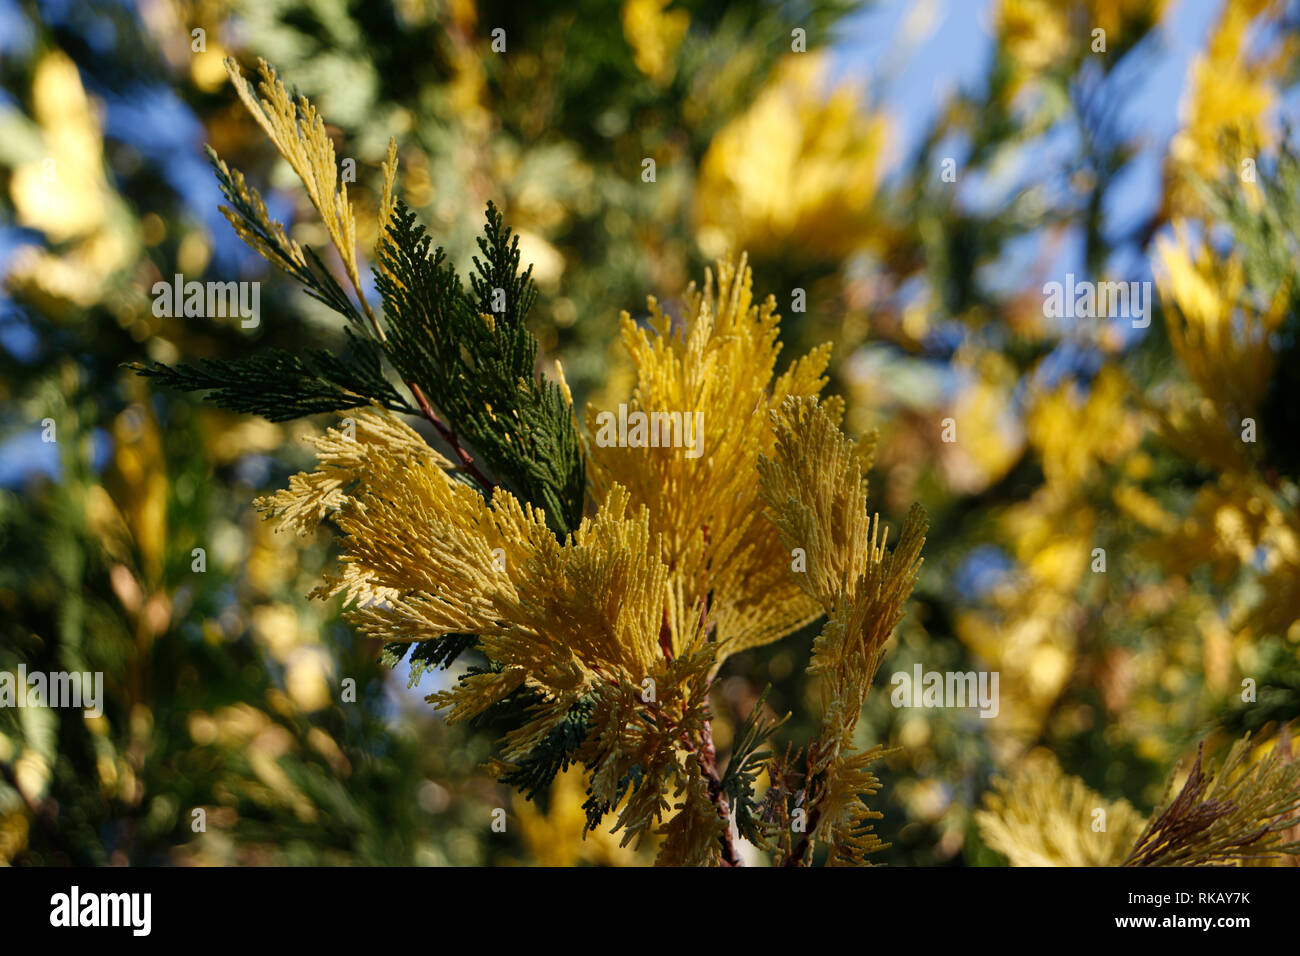 Juniper is an evergreen plant with scalelike leaves and its seeds need be eaten by fieldfare to germinate. Some juniper trees are yellow variegated. Stock Photo